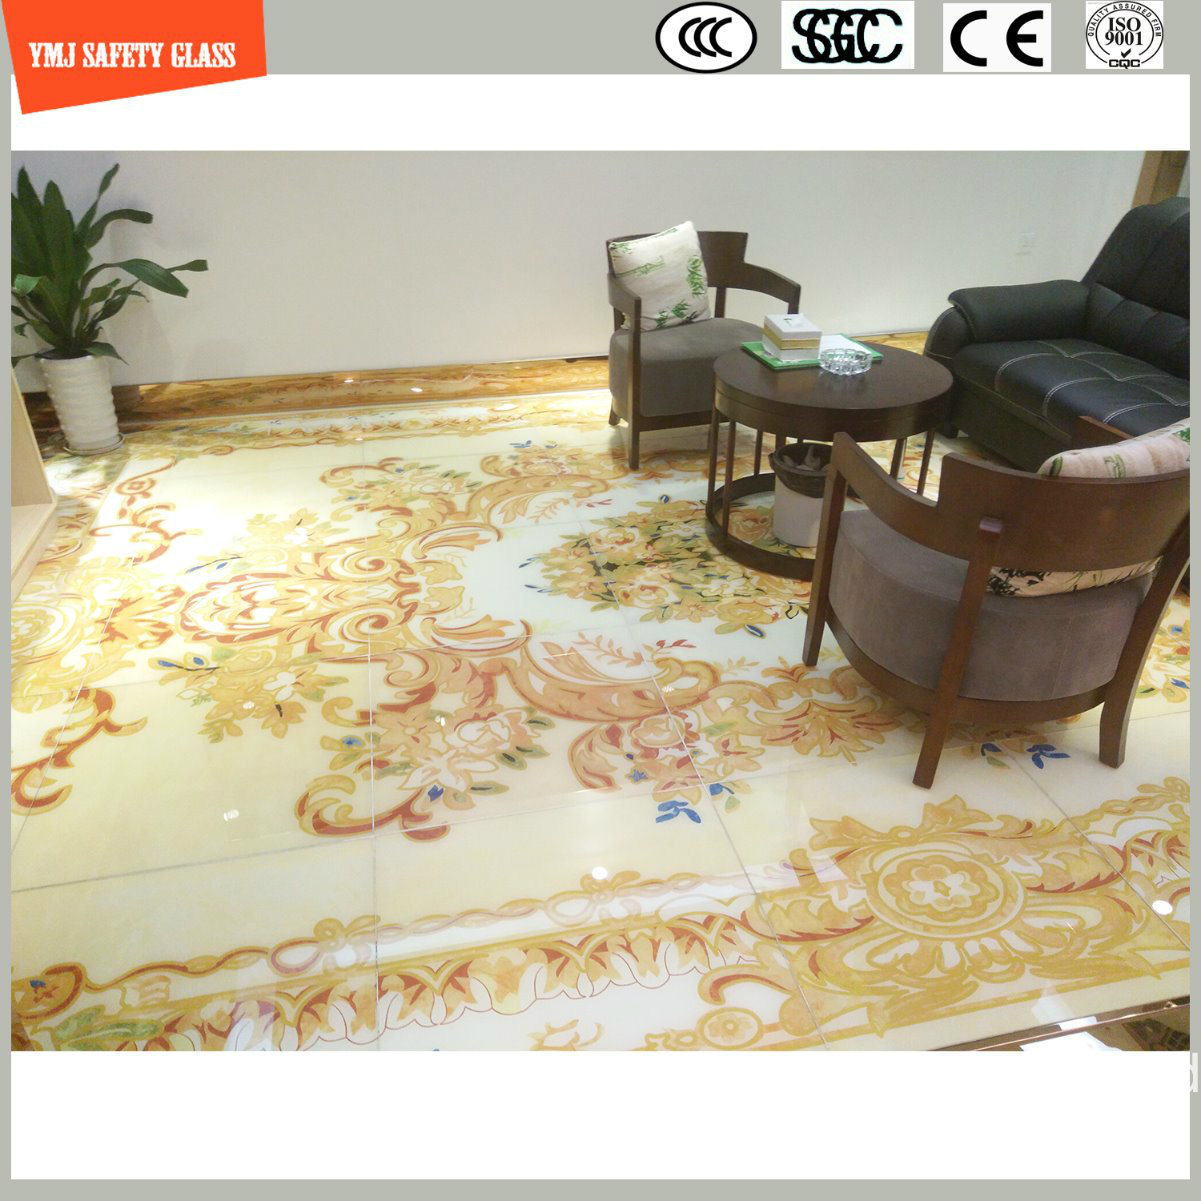 4-6mm Tempered Glass Marble for Wall and Floor